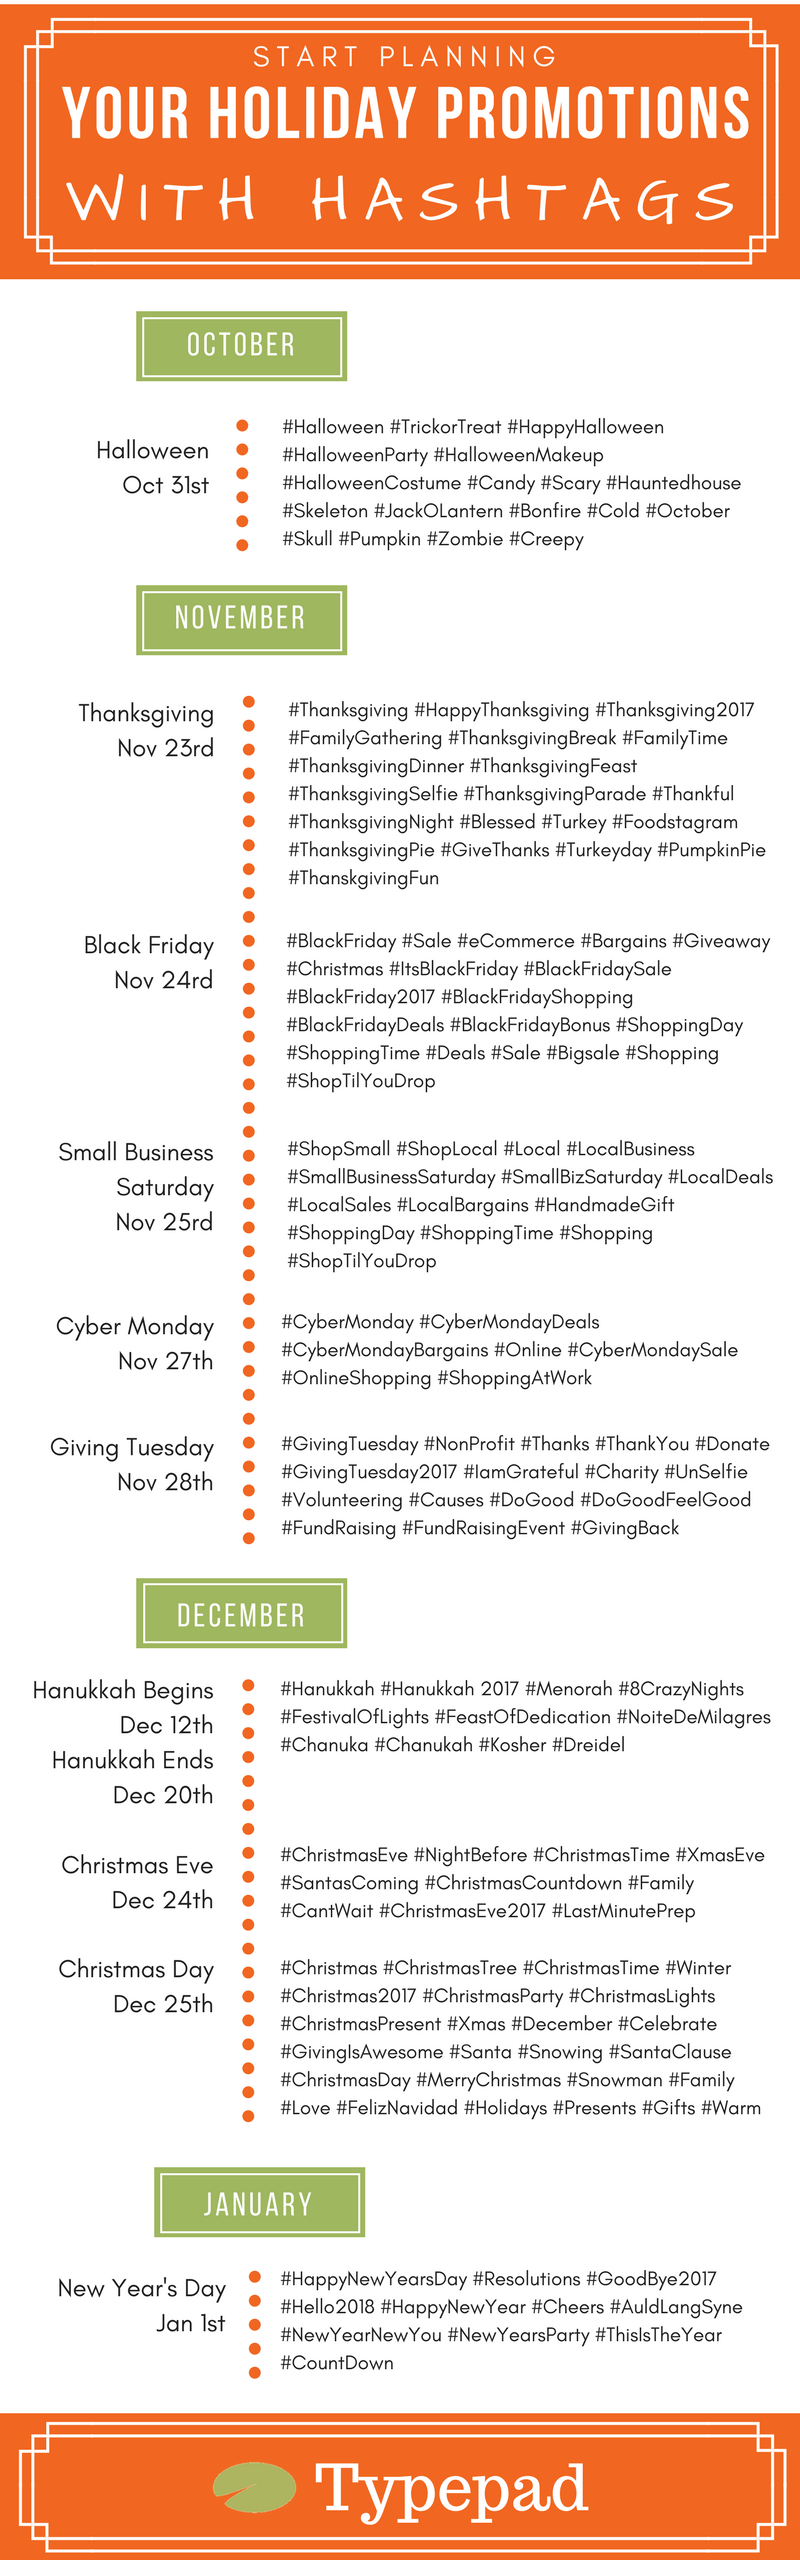 Holiday Season Hashtags